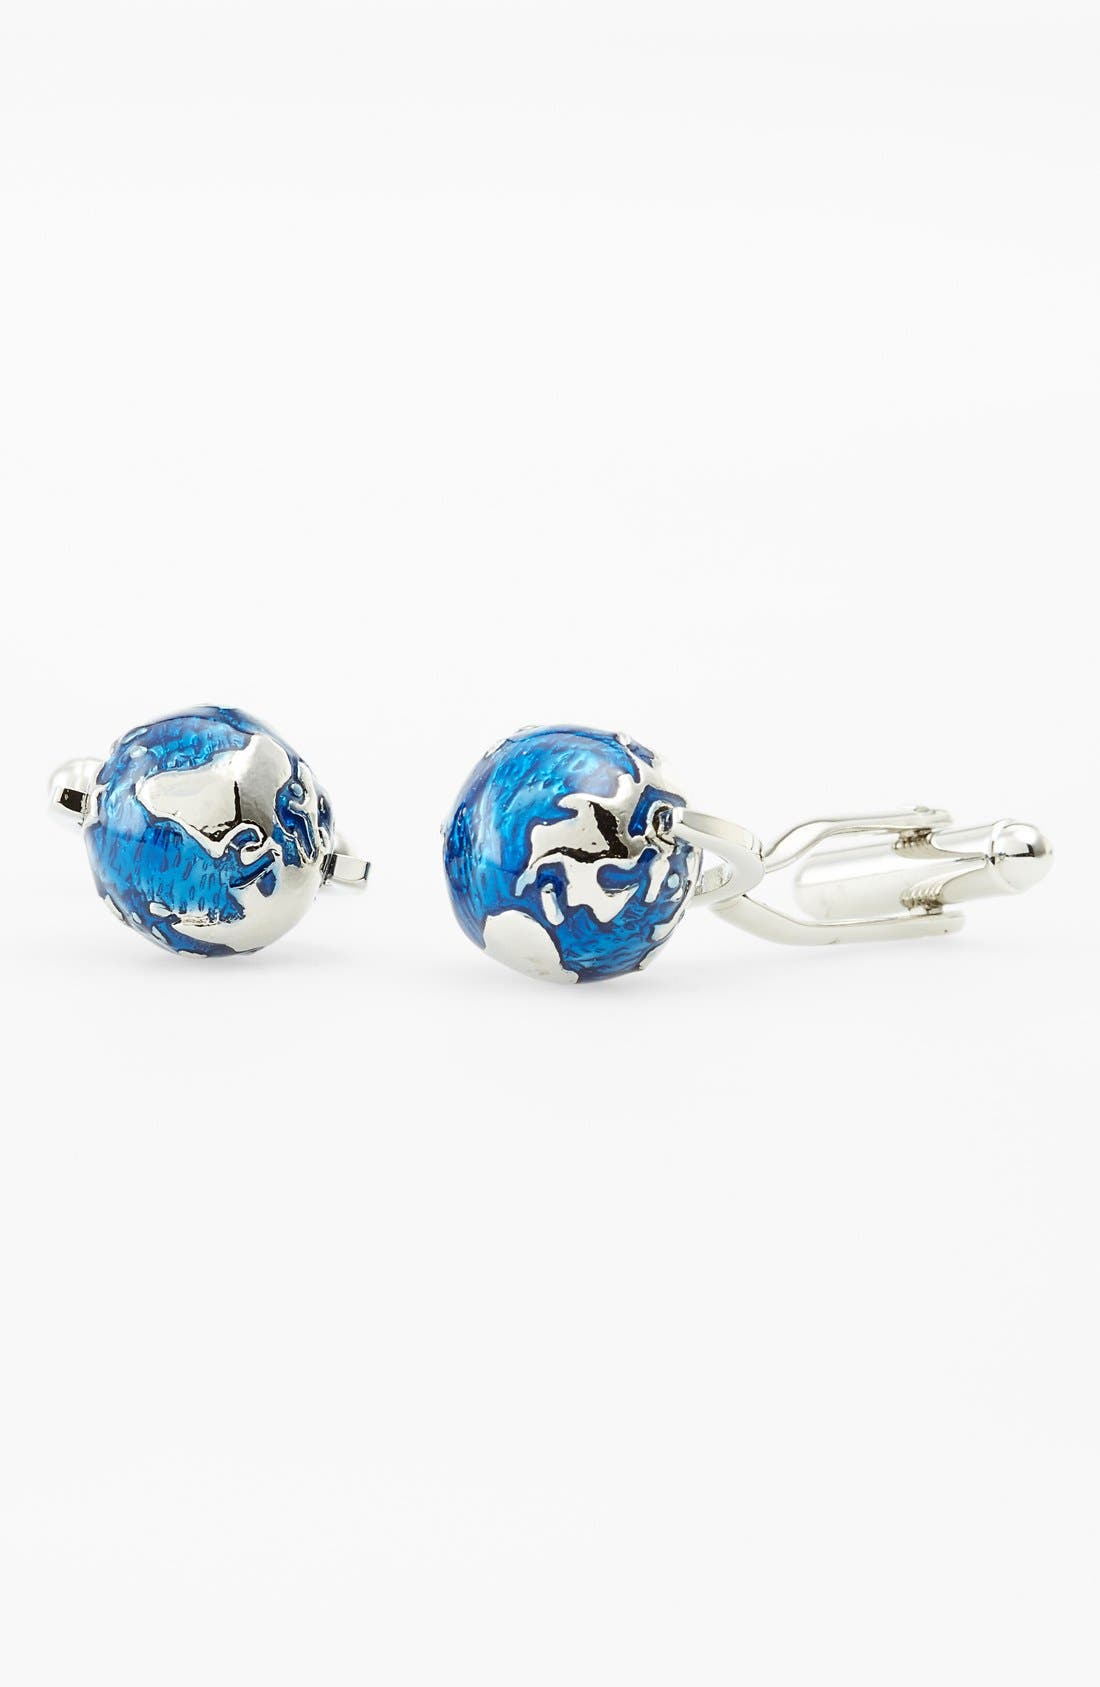 Main Image - LINK UP 'Spinning Globe' Cuff Links